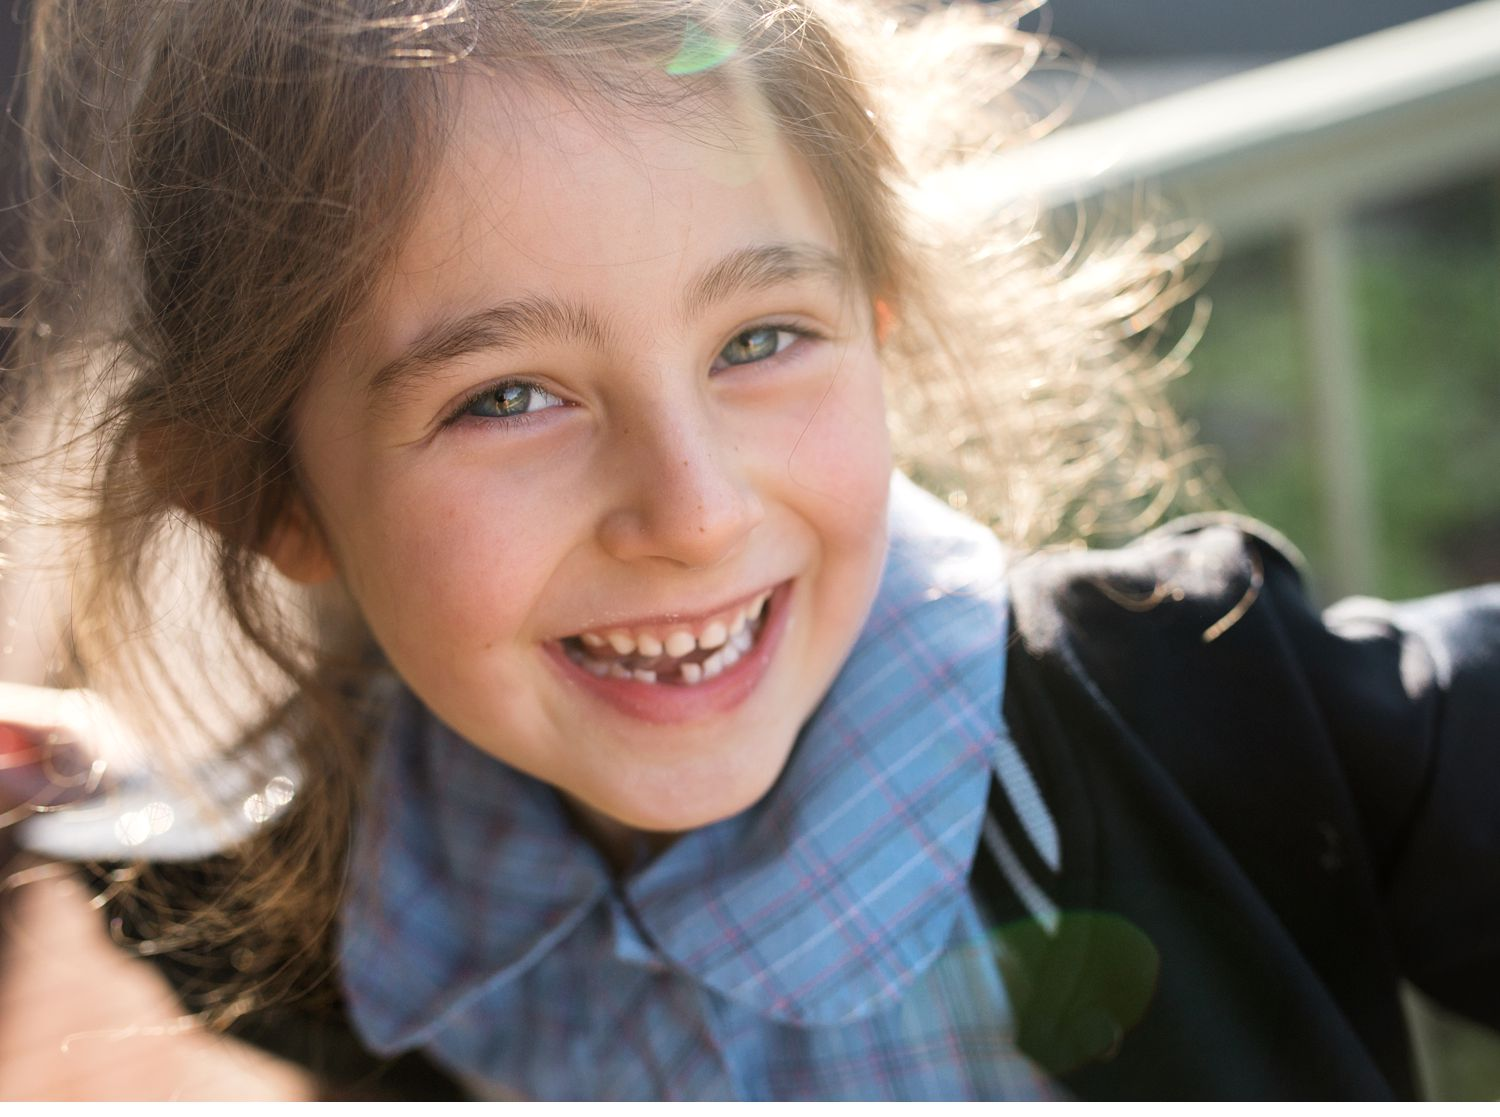 lost-first-tooth-milestone-photographer-melbourne.jpg